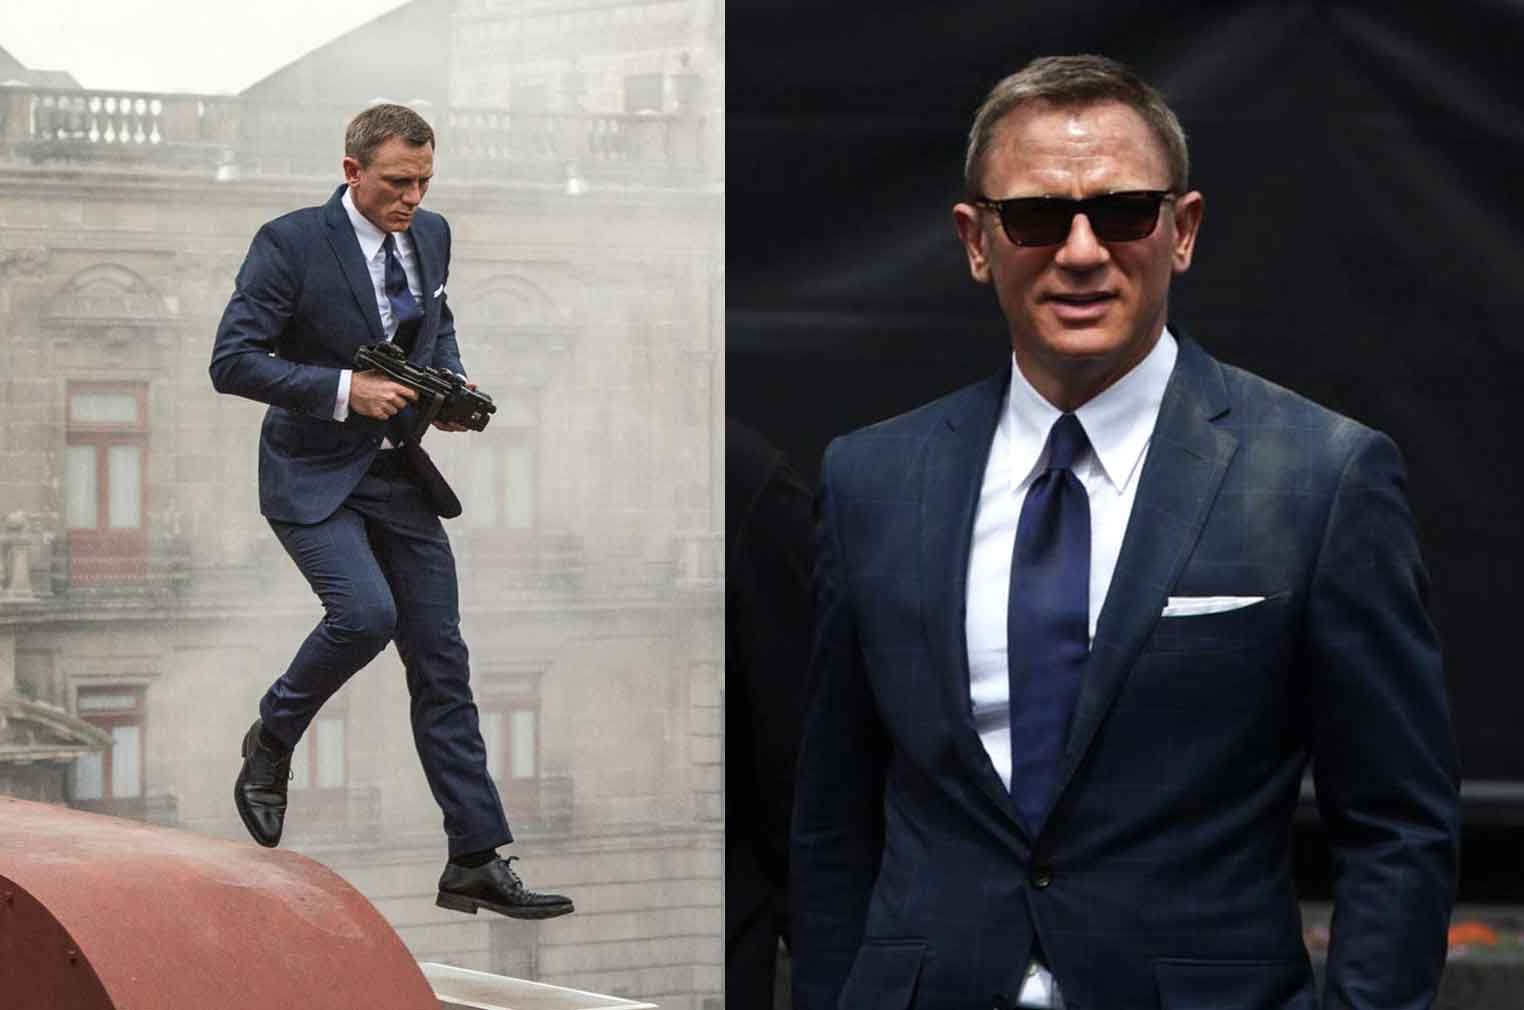 f6cbfe8954b3 Bond changed his bone daddy costumes to Tom Ford windowpane suit instantly  to capture the elegance and get his timeless style after reaching to the  hotel ...